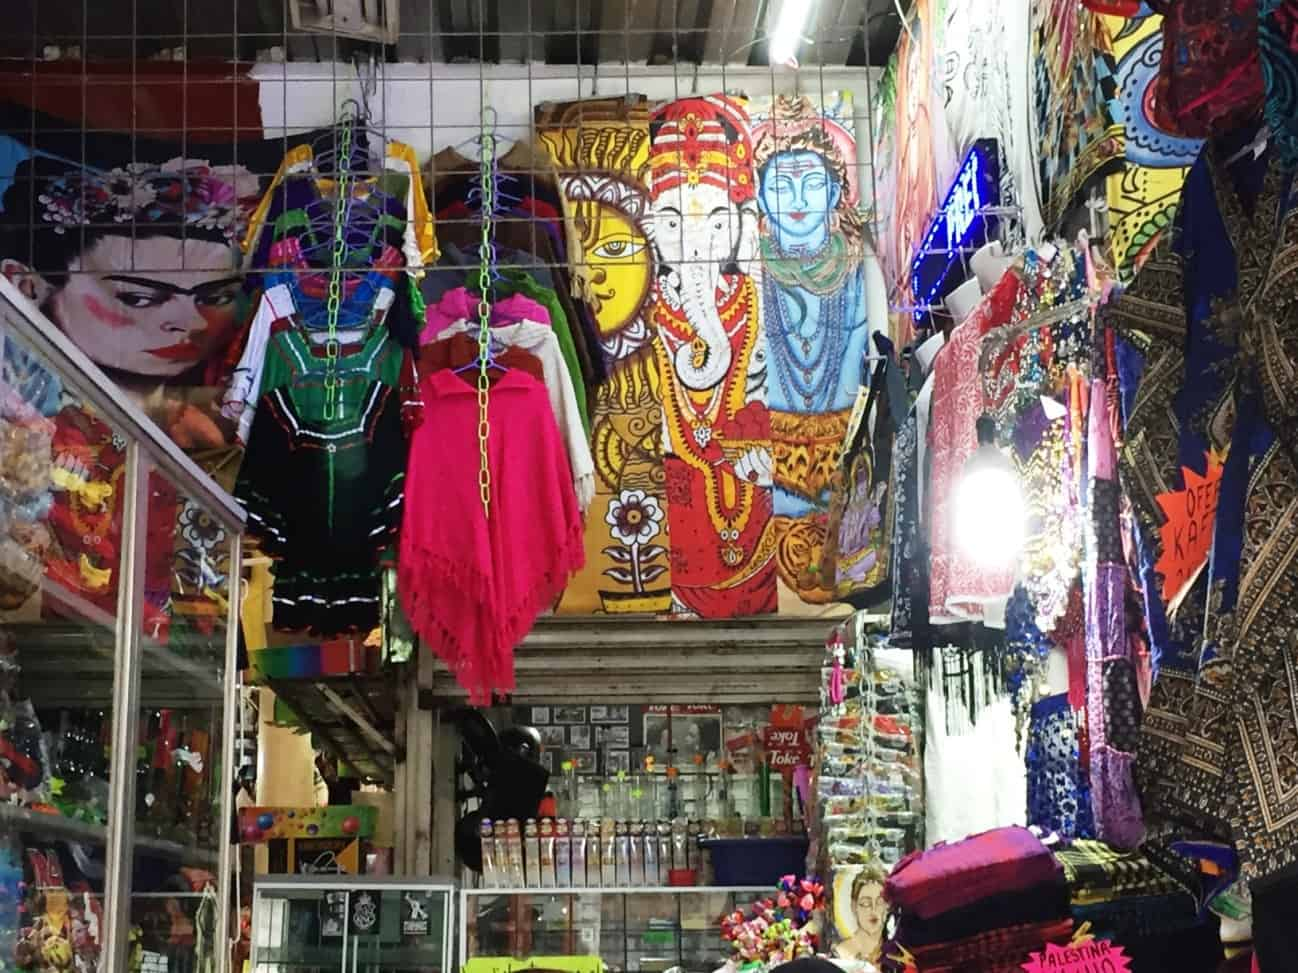 Shop selling spiritual products - A very full first day in Mexico City